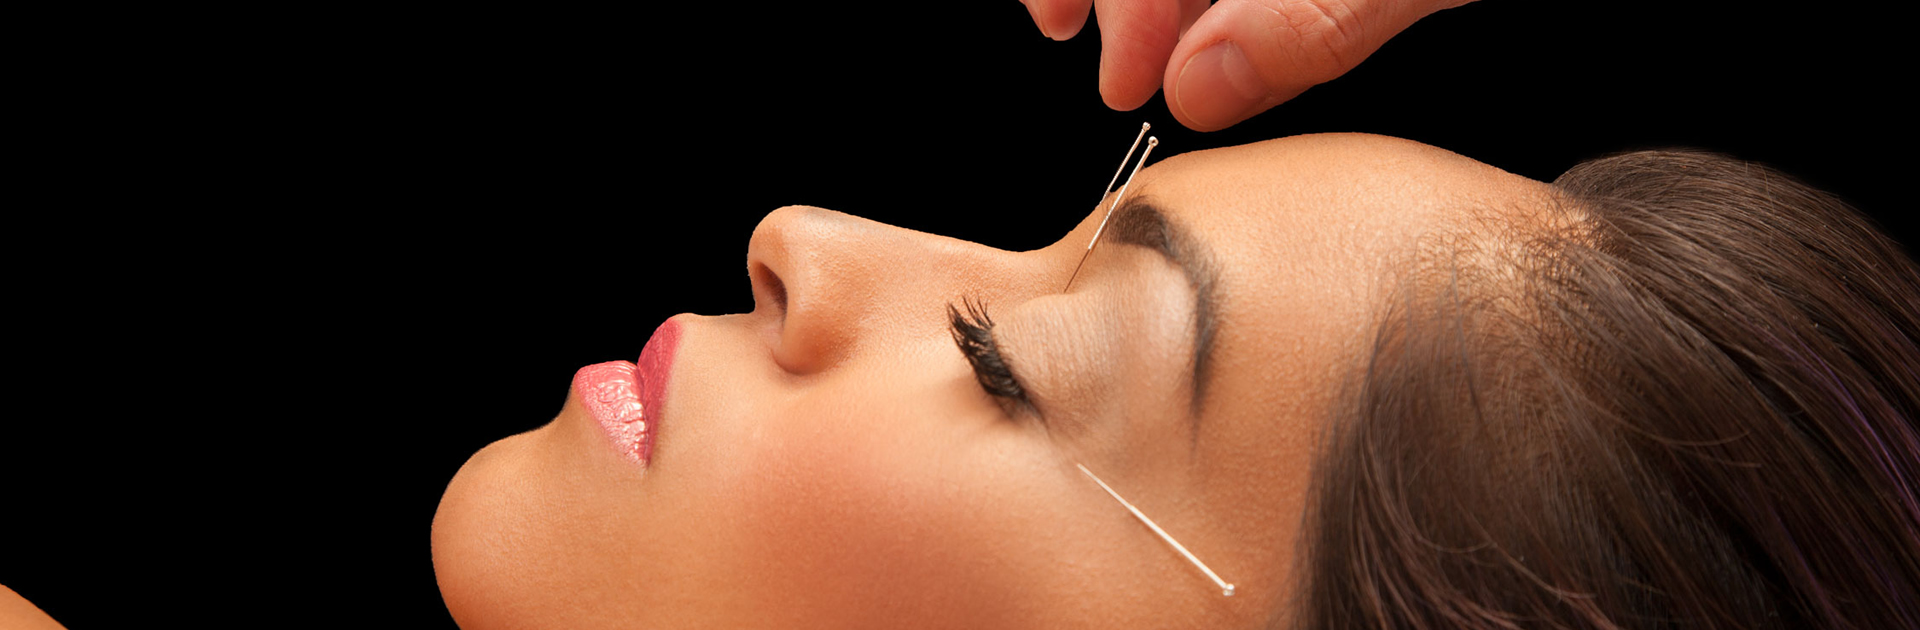 Face & Neck Rejuvenation from Gabrielle Zlotnik & The Dao Acupuncture